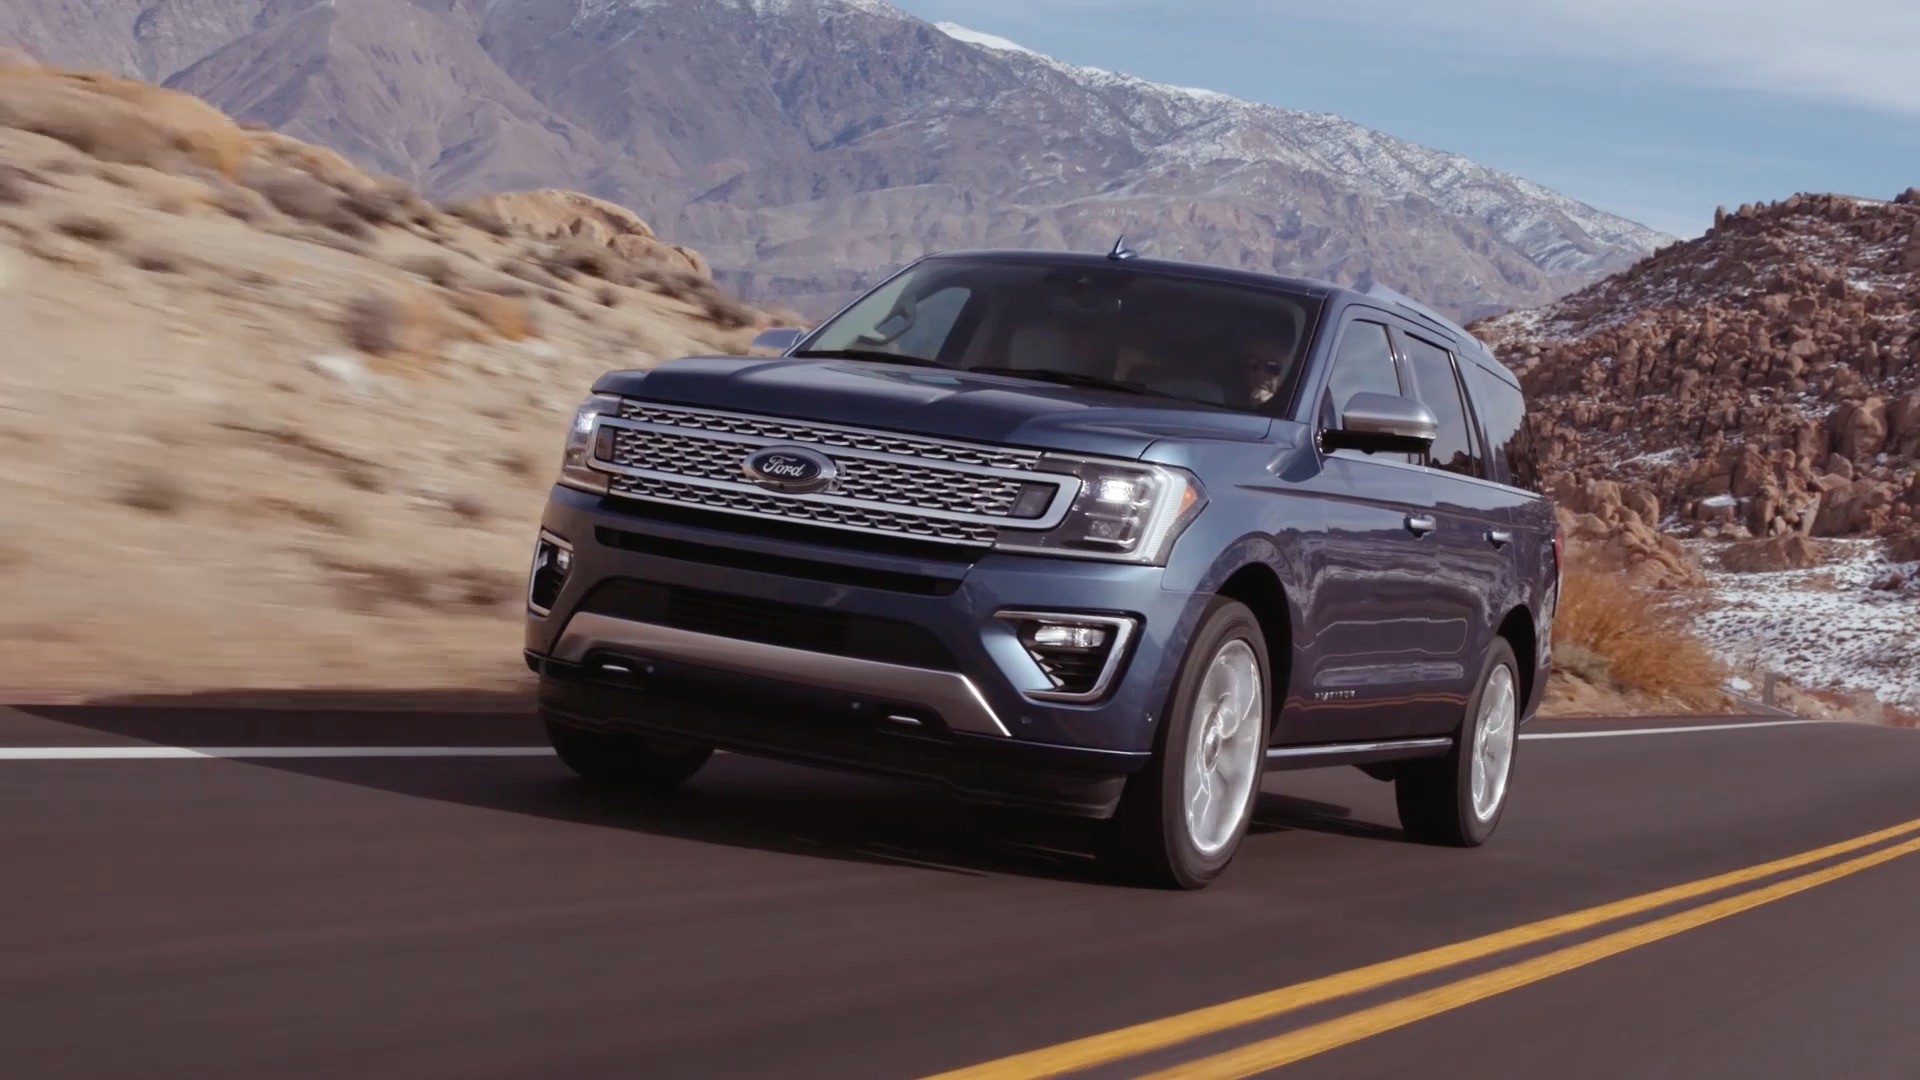 2018 ford expedition leaks out ahead of official debut